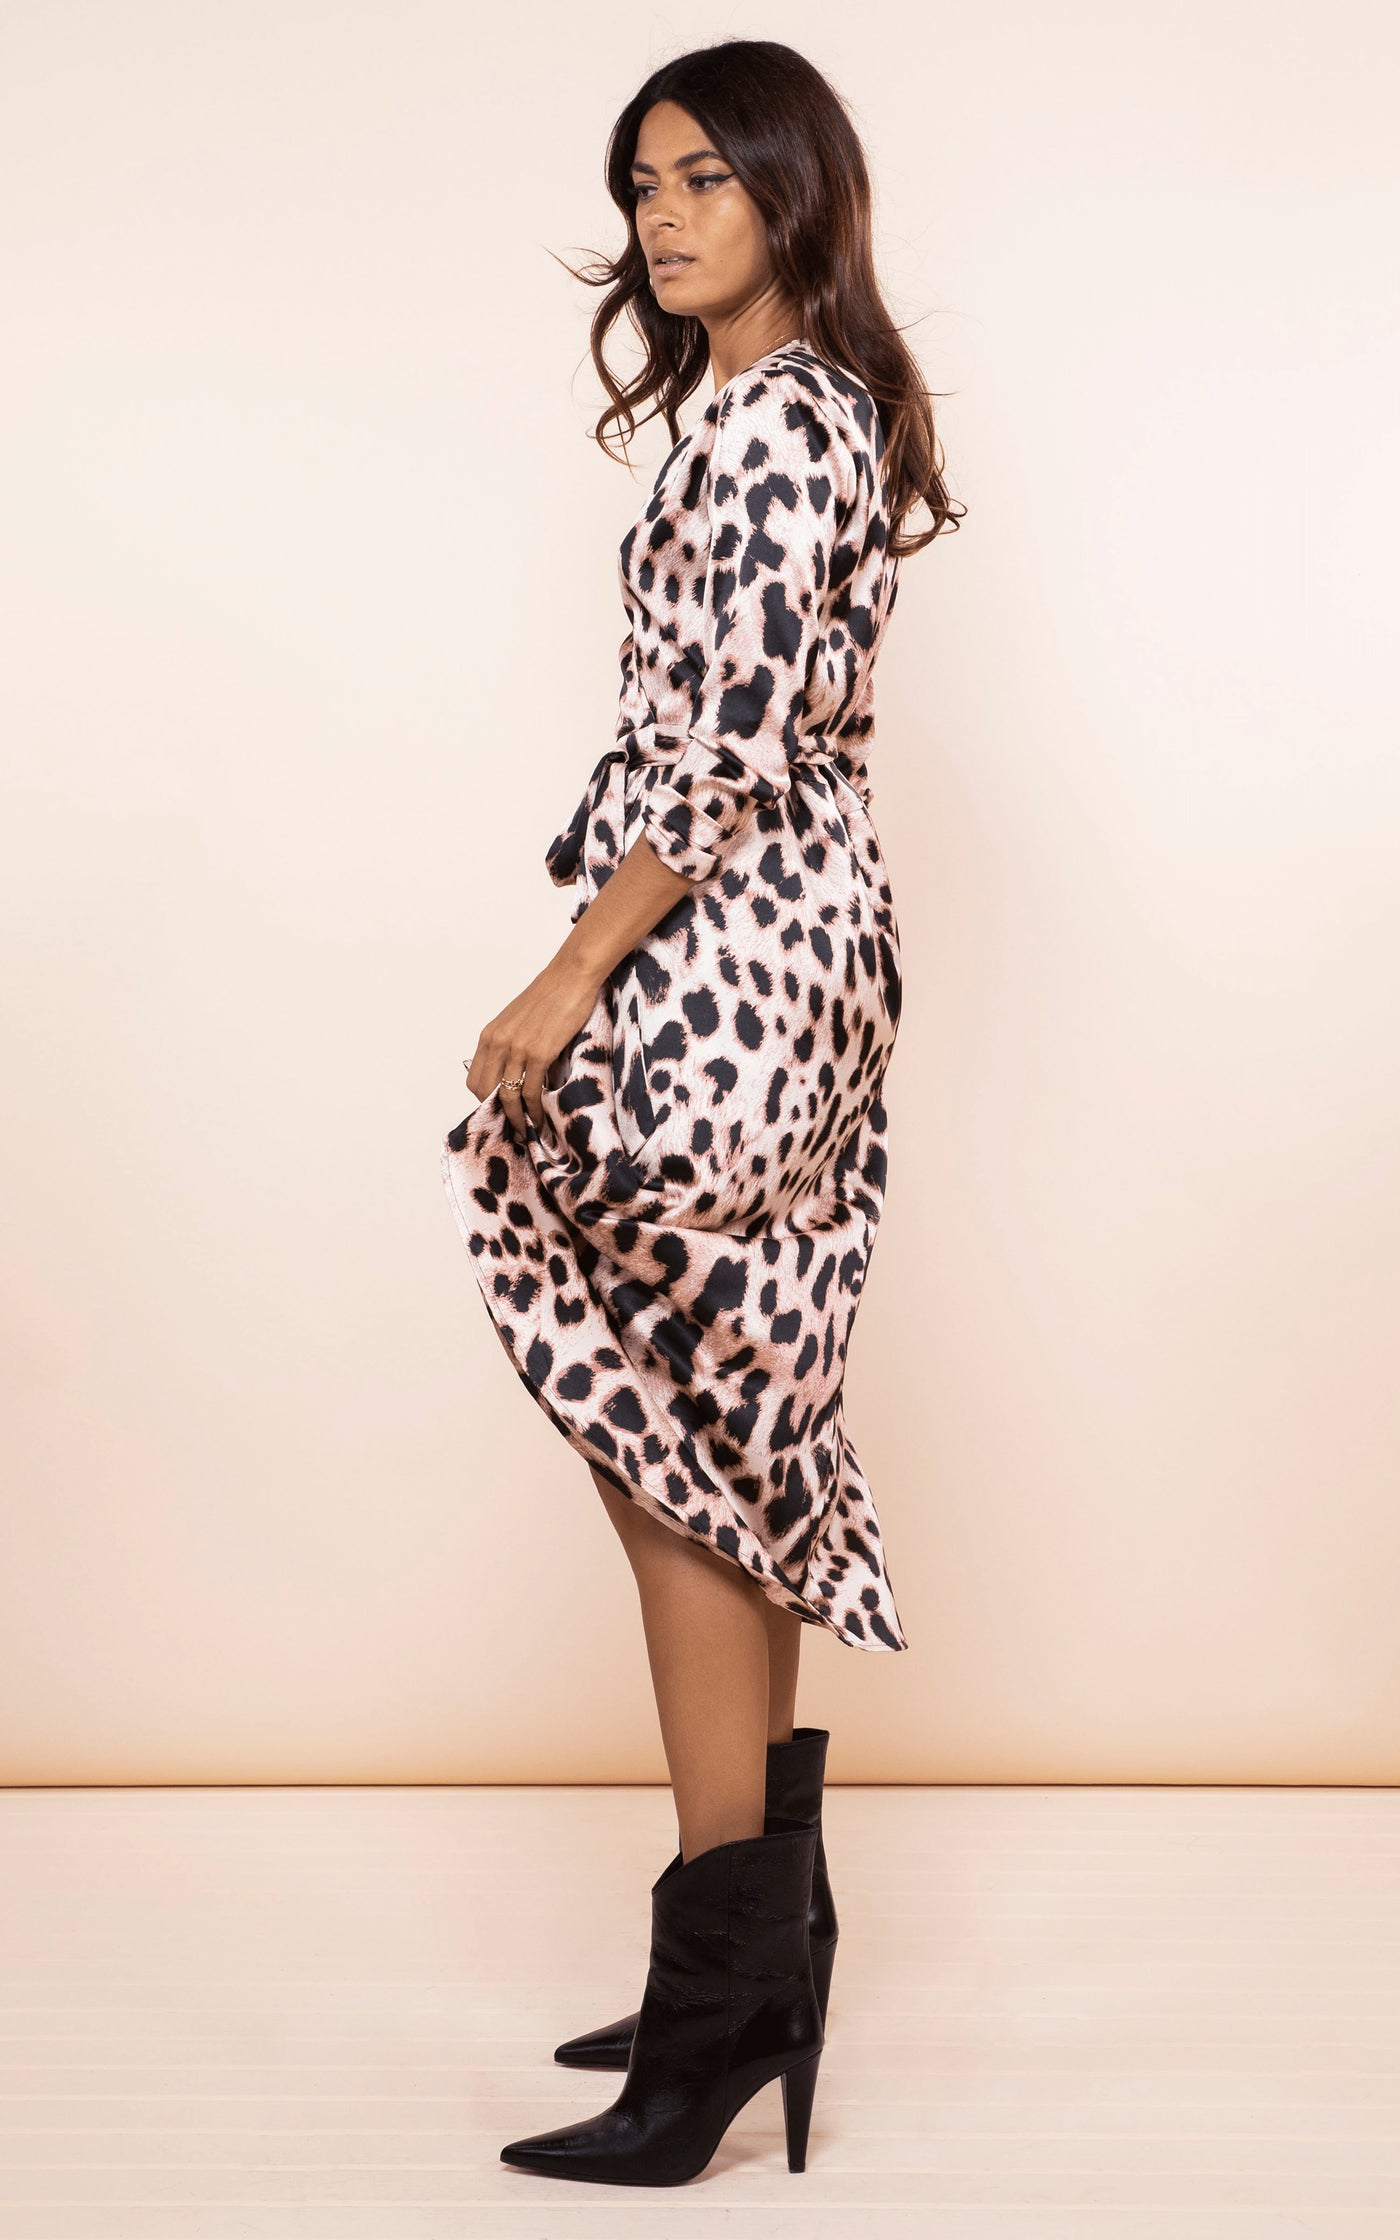 Dancing Leopard model stands sideways wearing Yondal Dress in blush leopard print with boots